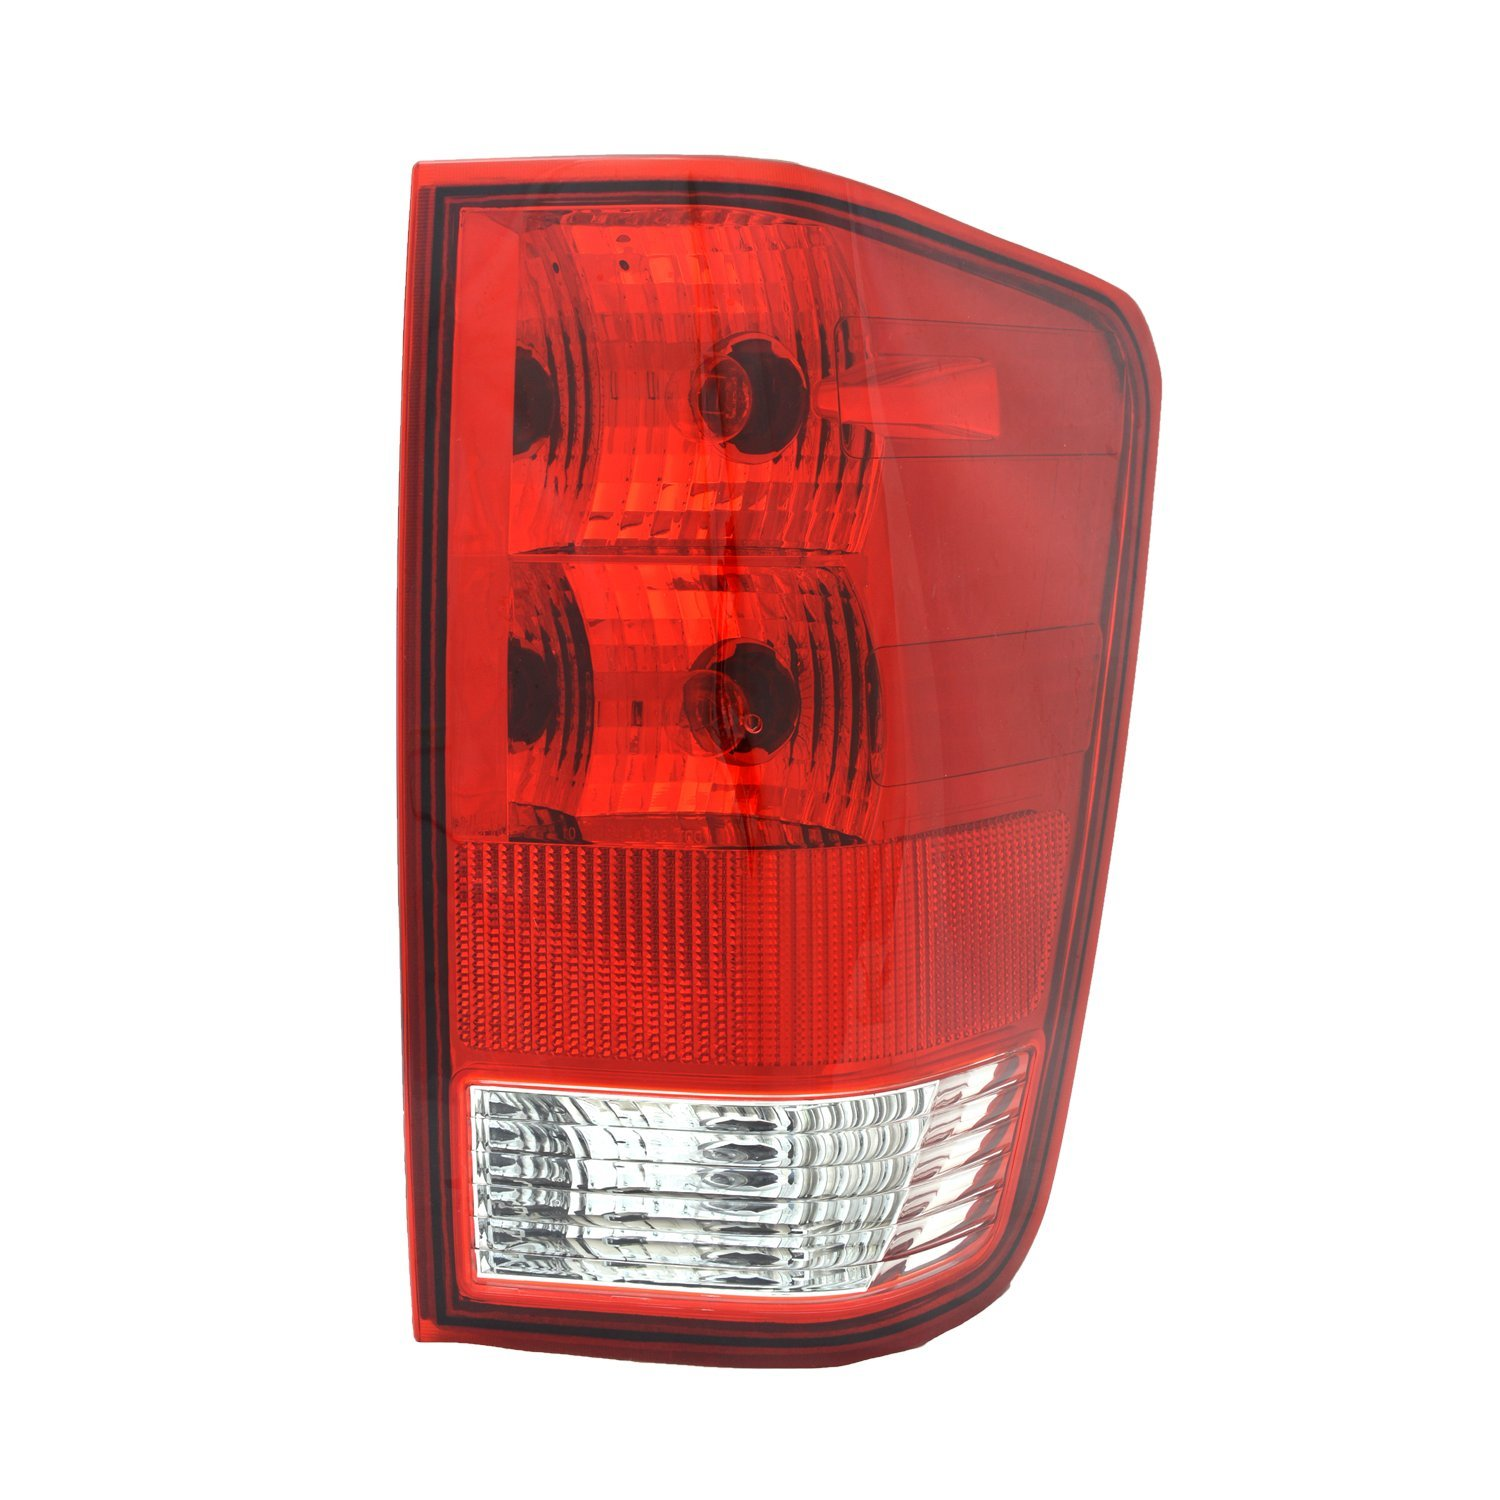 TYC 11-5999-00-9 Compatible with NISSAN Titan Right Replacement Tail Lamp